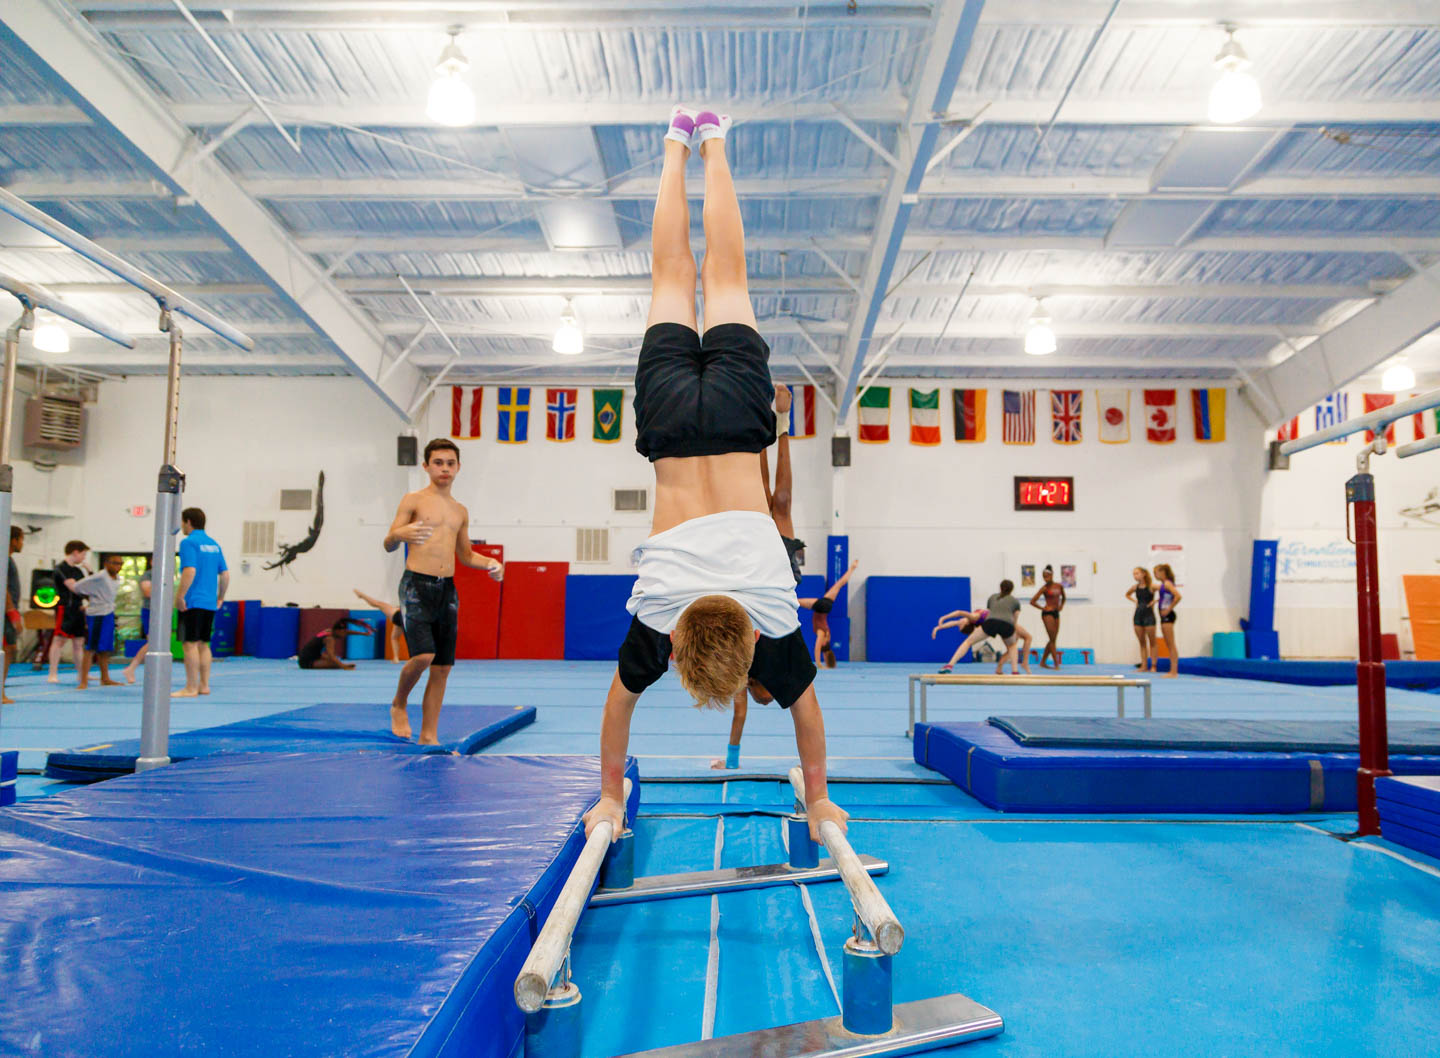 boy upside down on parallel bars